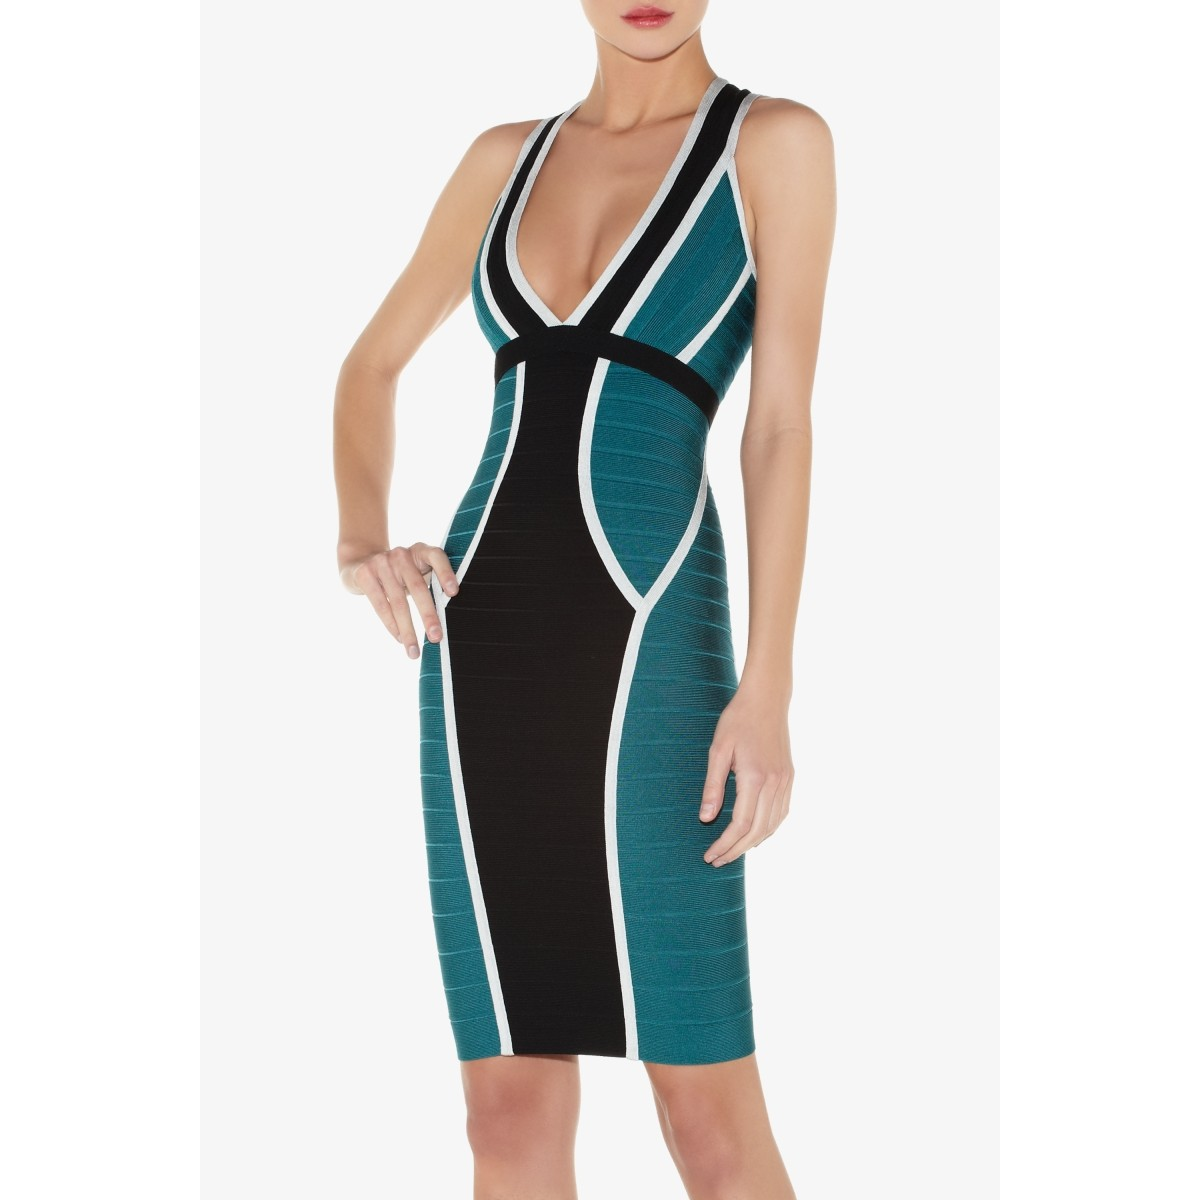 Herve Leger Eyvette Colorblocked Bandage Dress